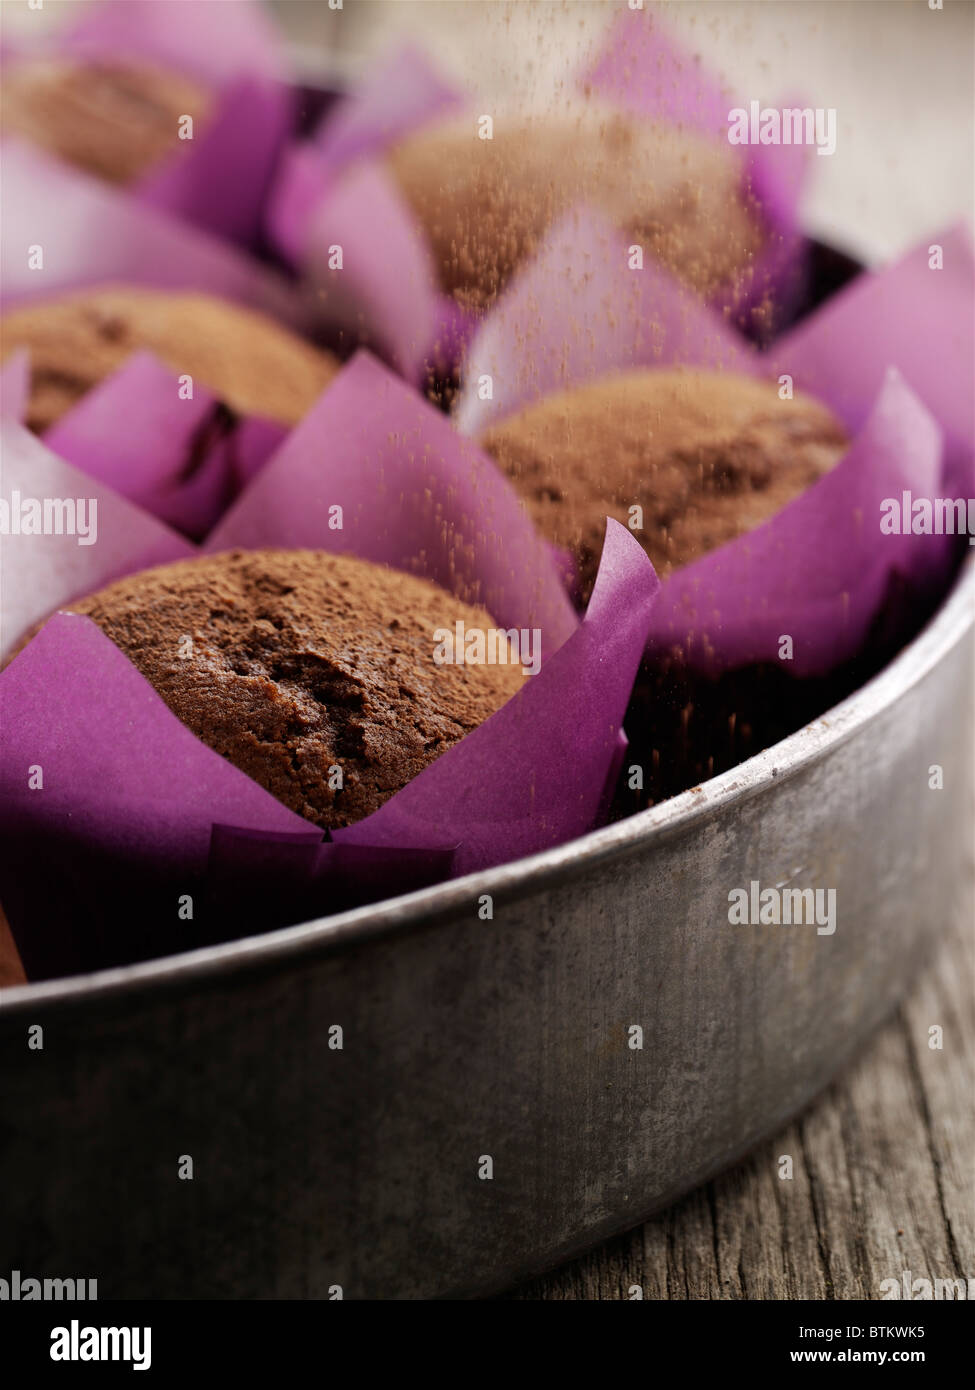 Fresh baked chocolate cupcakes in purple wrappers. - Stock Image